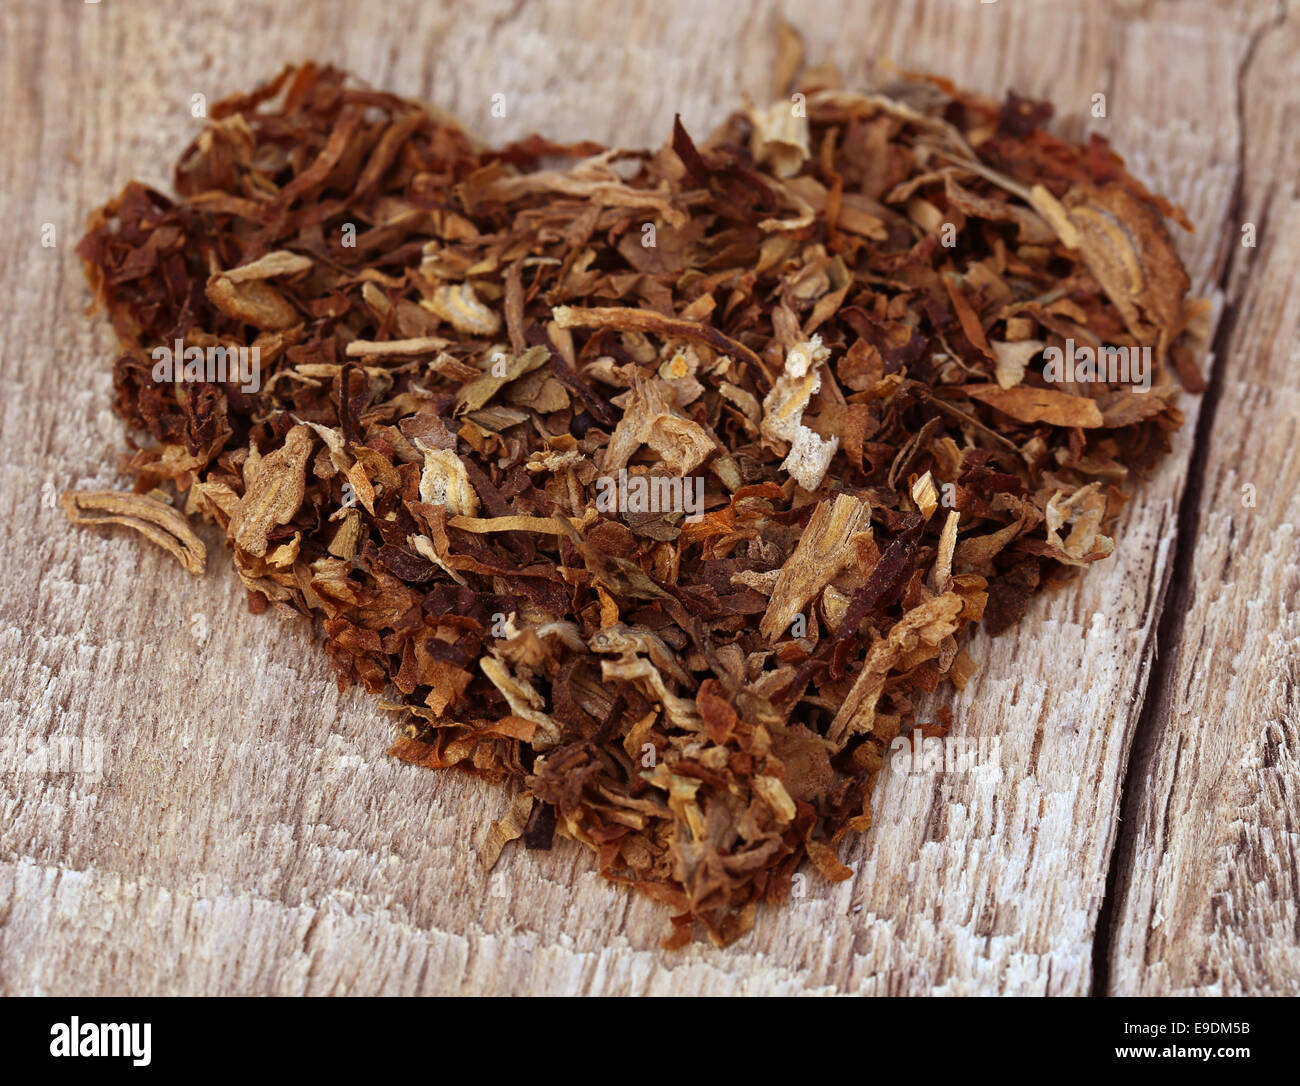 Dried tobacco leaves  decorated in heart shape on wooden surface - Stock Image